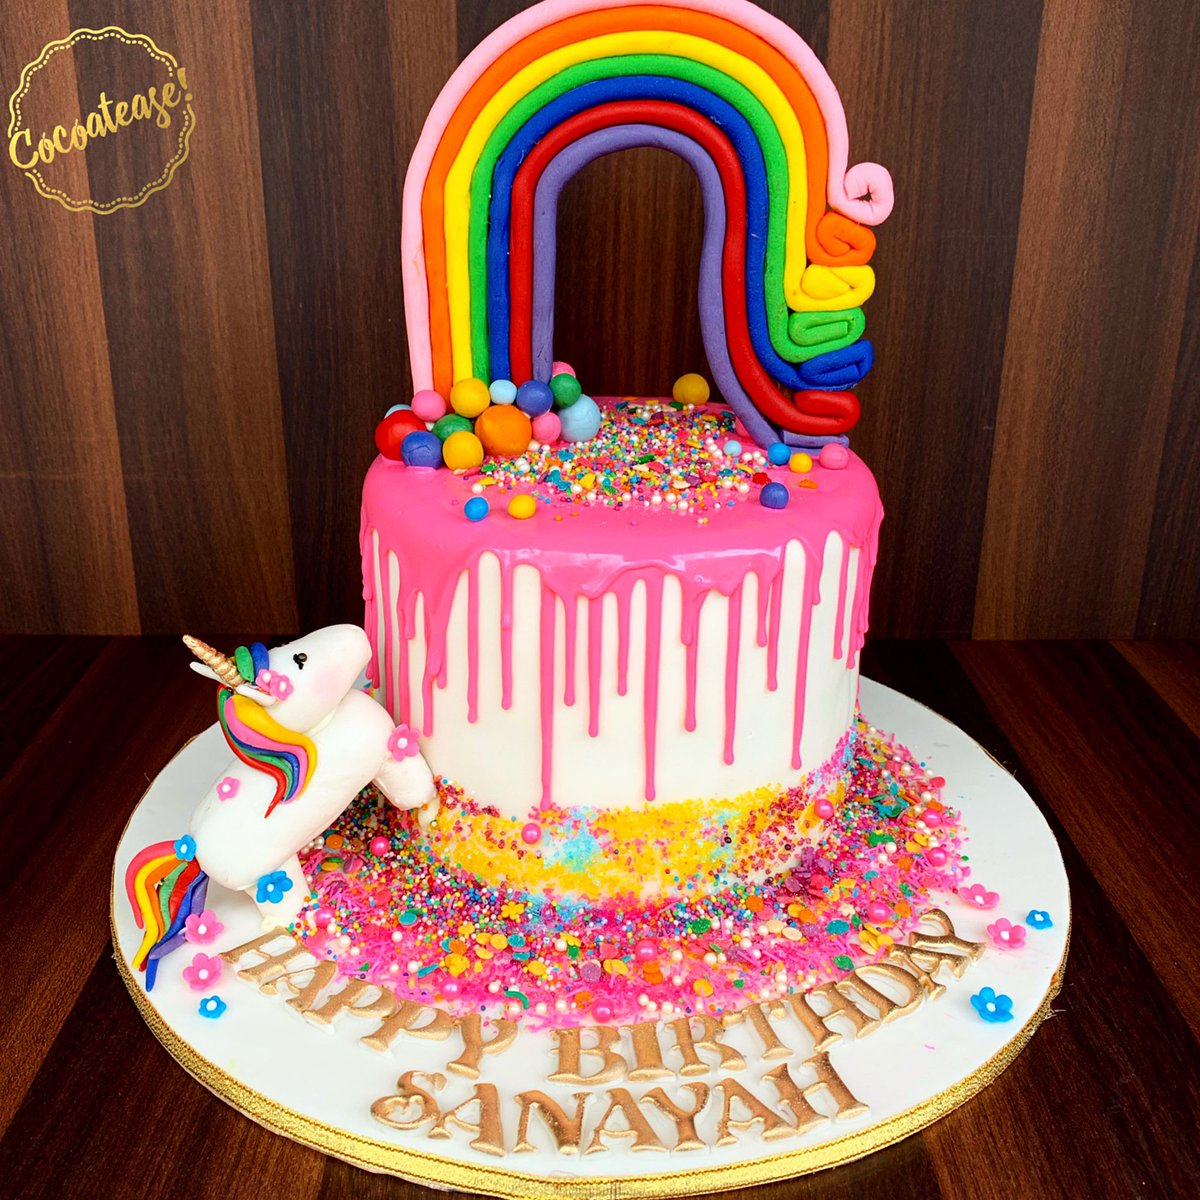 """""""Create your own rainbow, everyday.""""🌈🌈🌈How adorable is this cake! Rainbow inside out! #rainbow #birthday #cake #unicorn #cute #magic #sparkle #sprinkles #love #joy #happiness #tag #follow #like #cocoatease #mumbai #foodie #blogger #artist #chef #mumbai #food #pastry"""